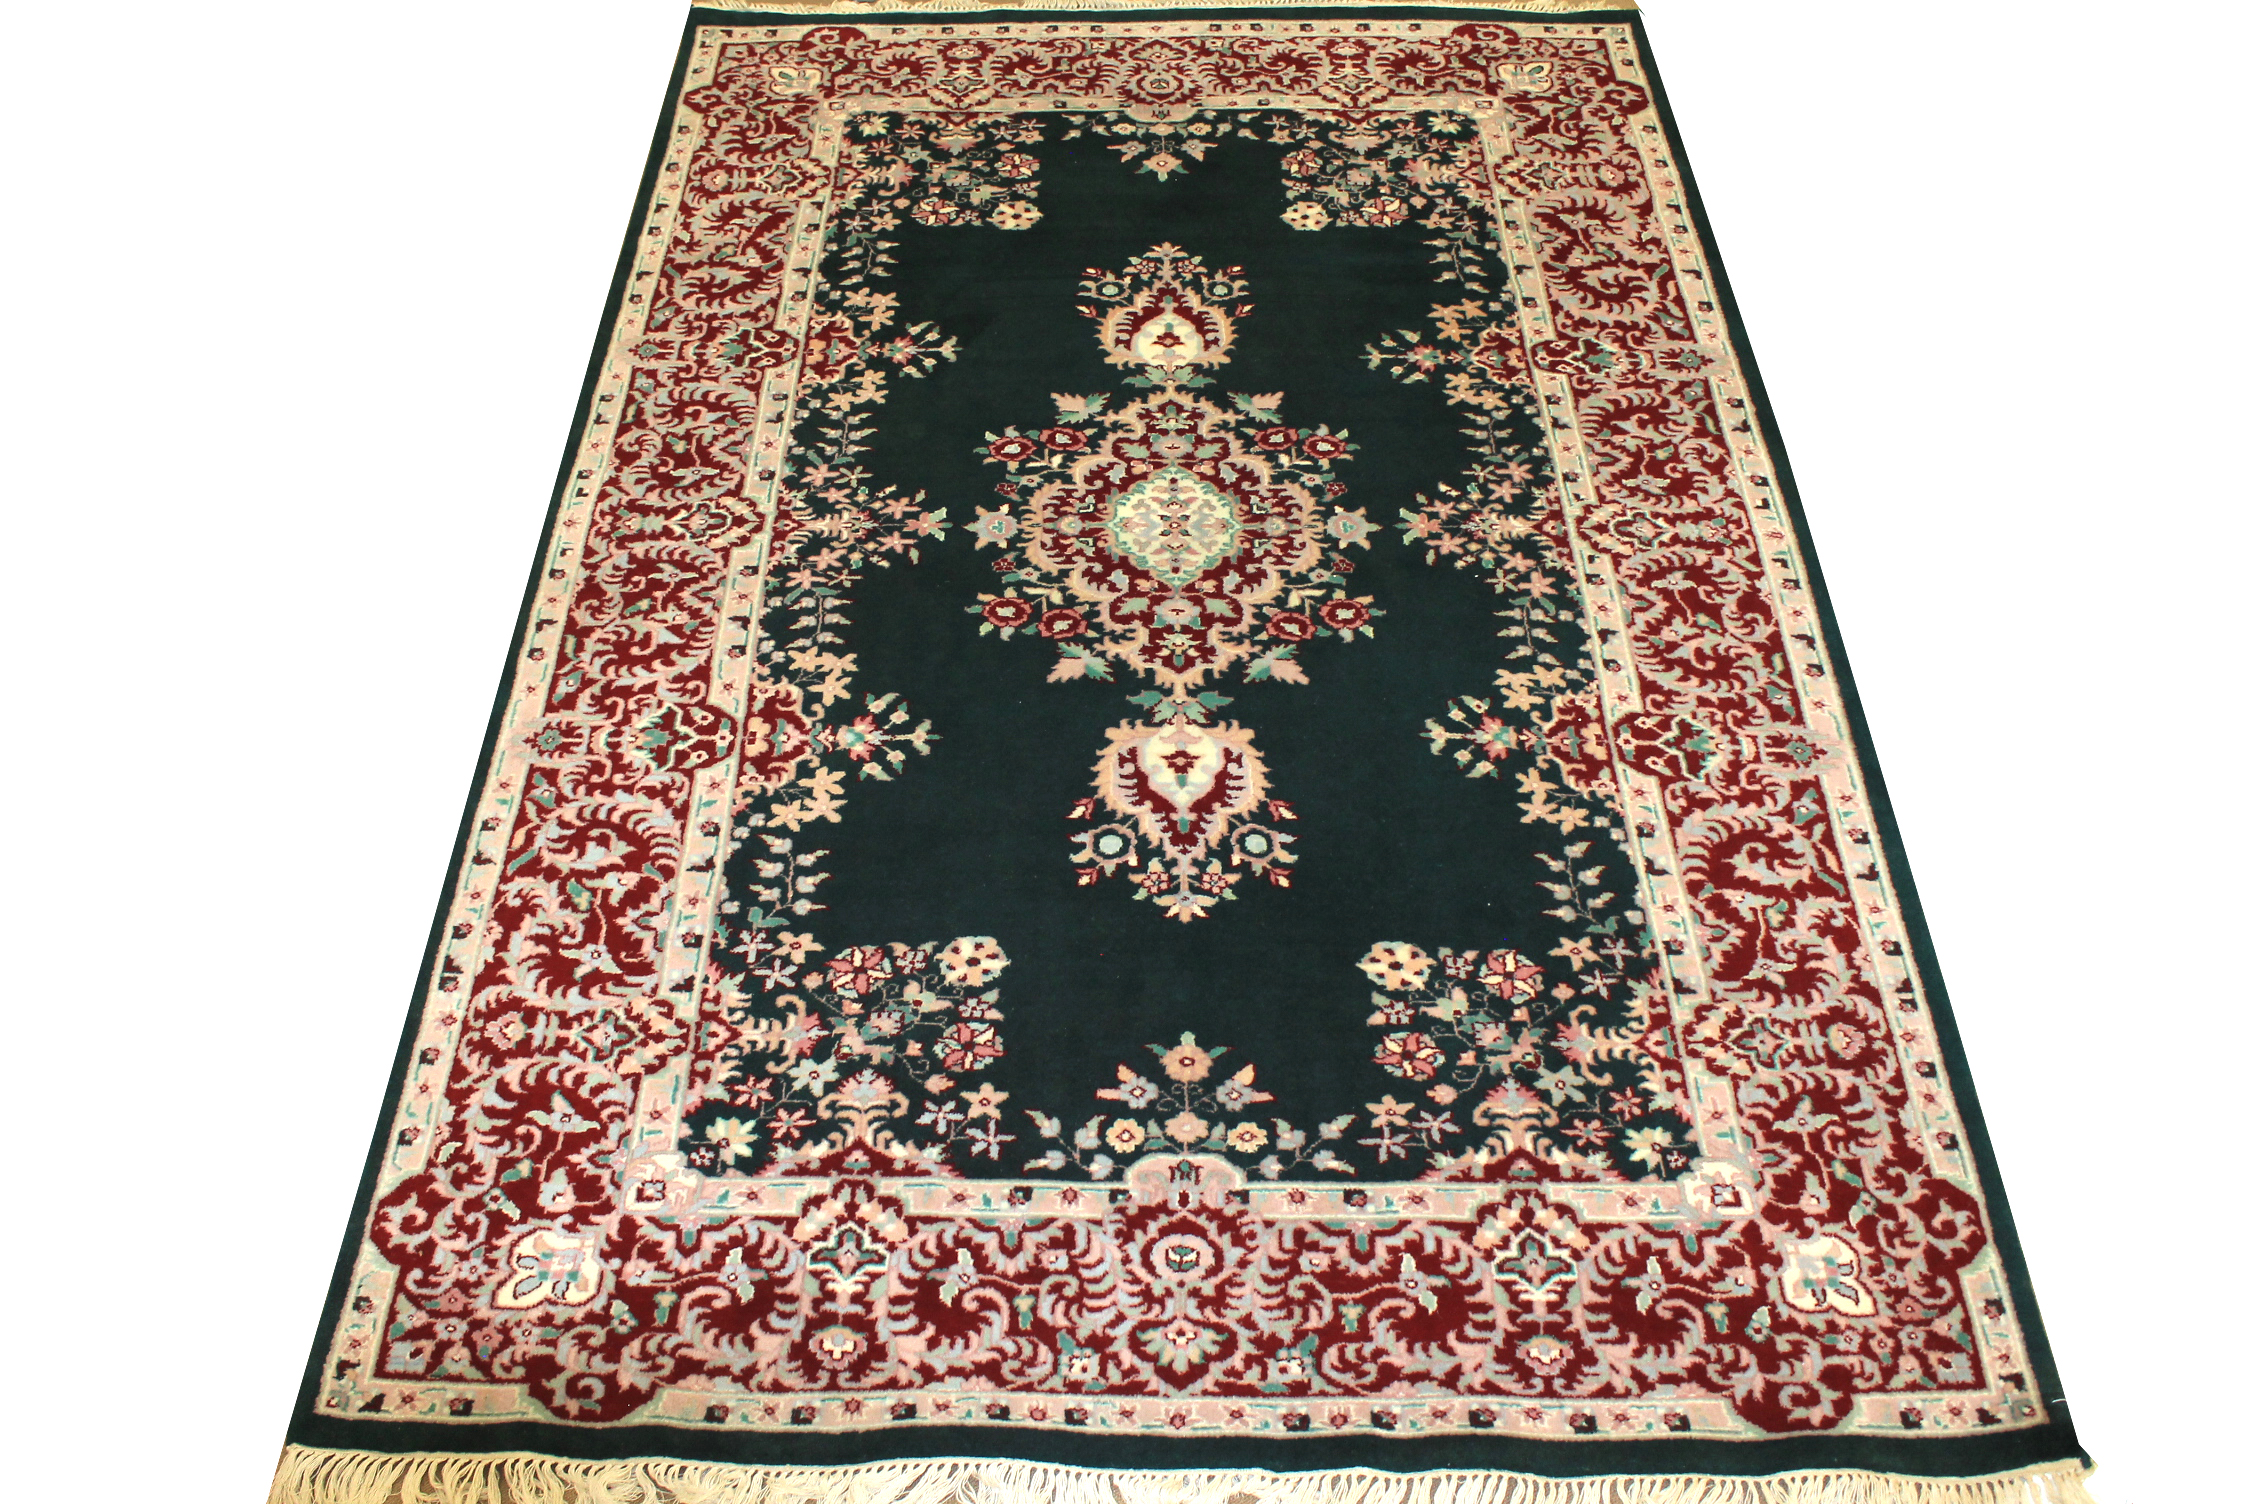 6x9 Traditional Hand Knotted Wool Area Rug - MR0182